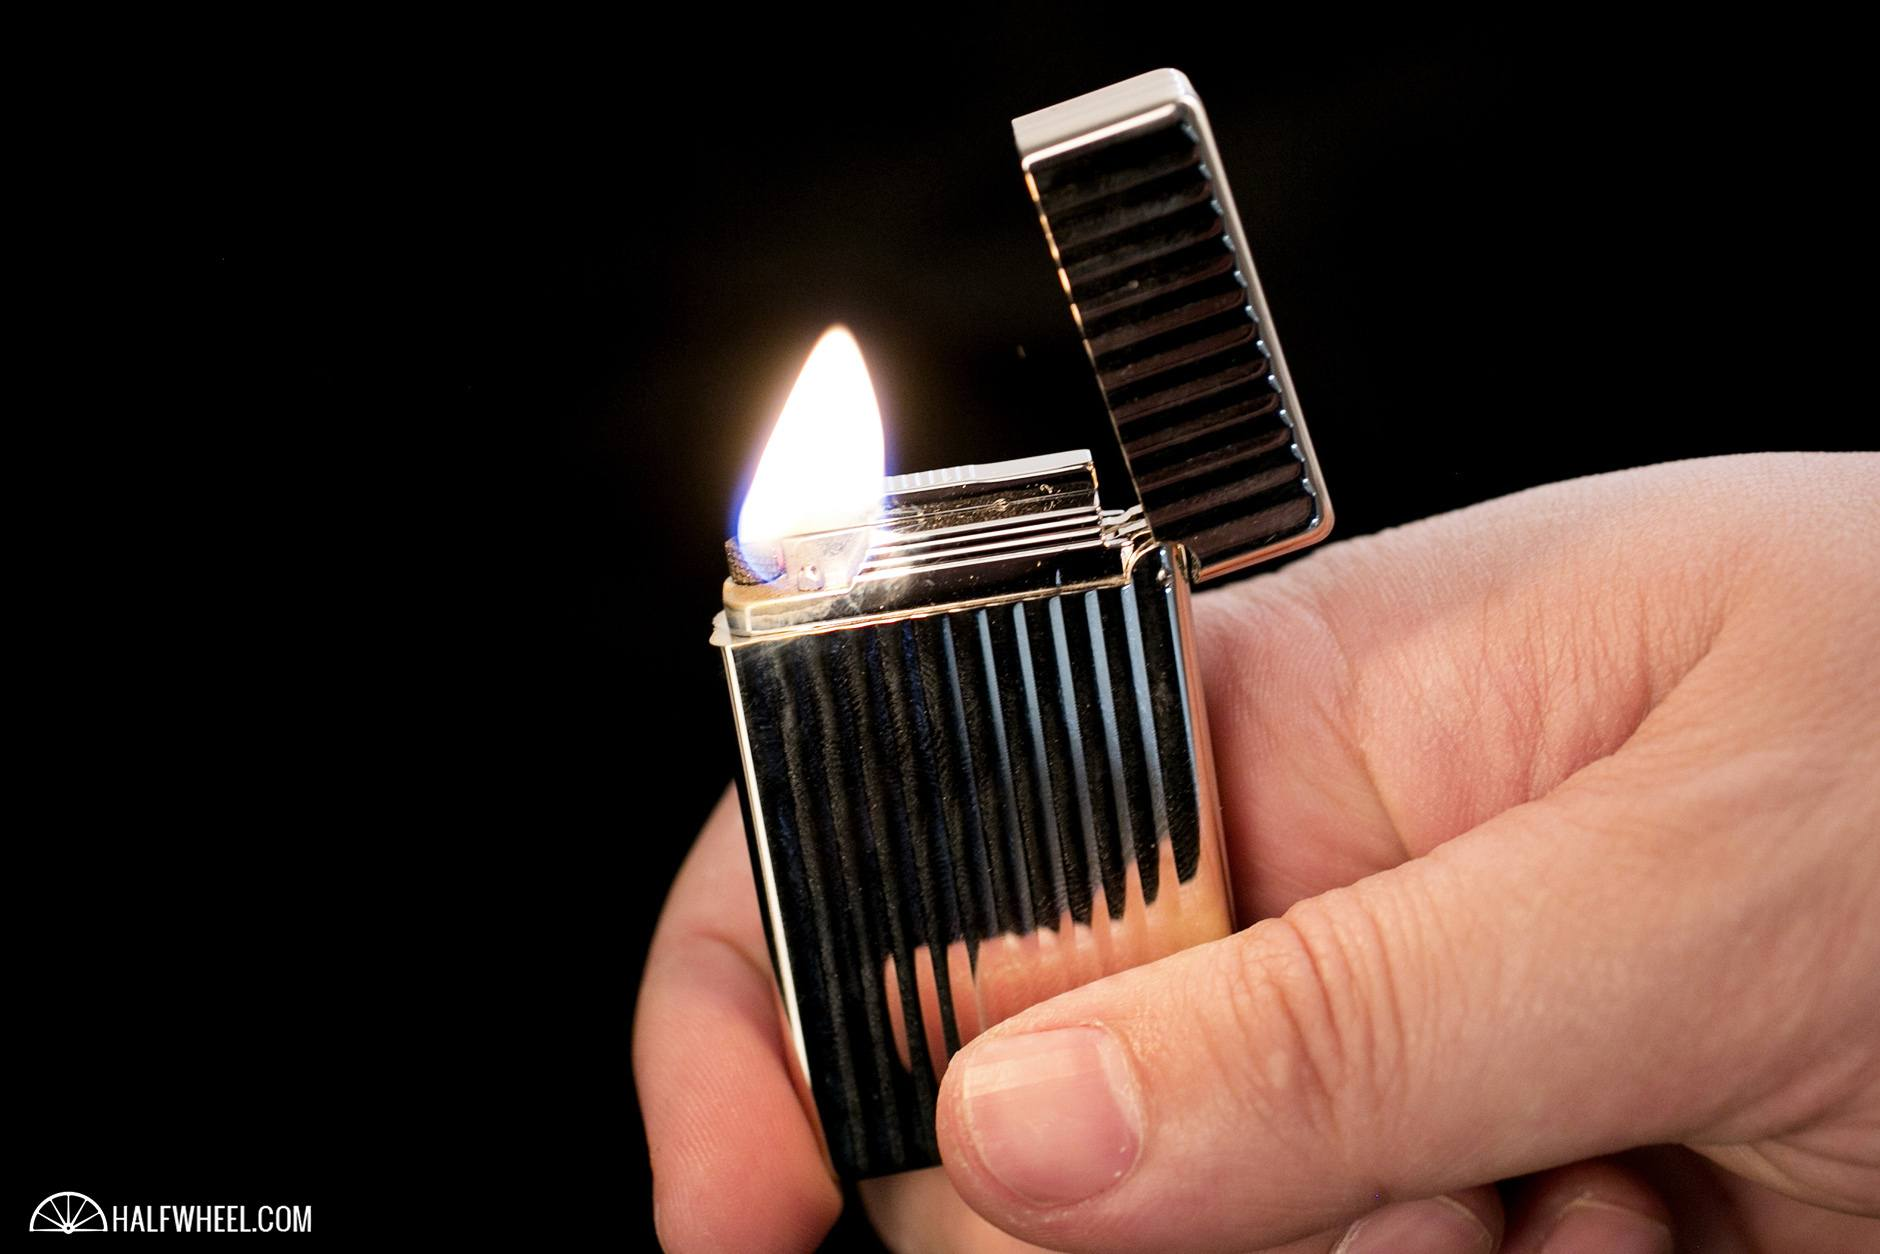 S.T. Dupont Initial Lighter Flame